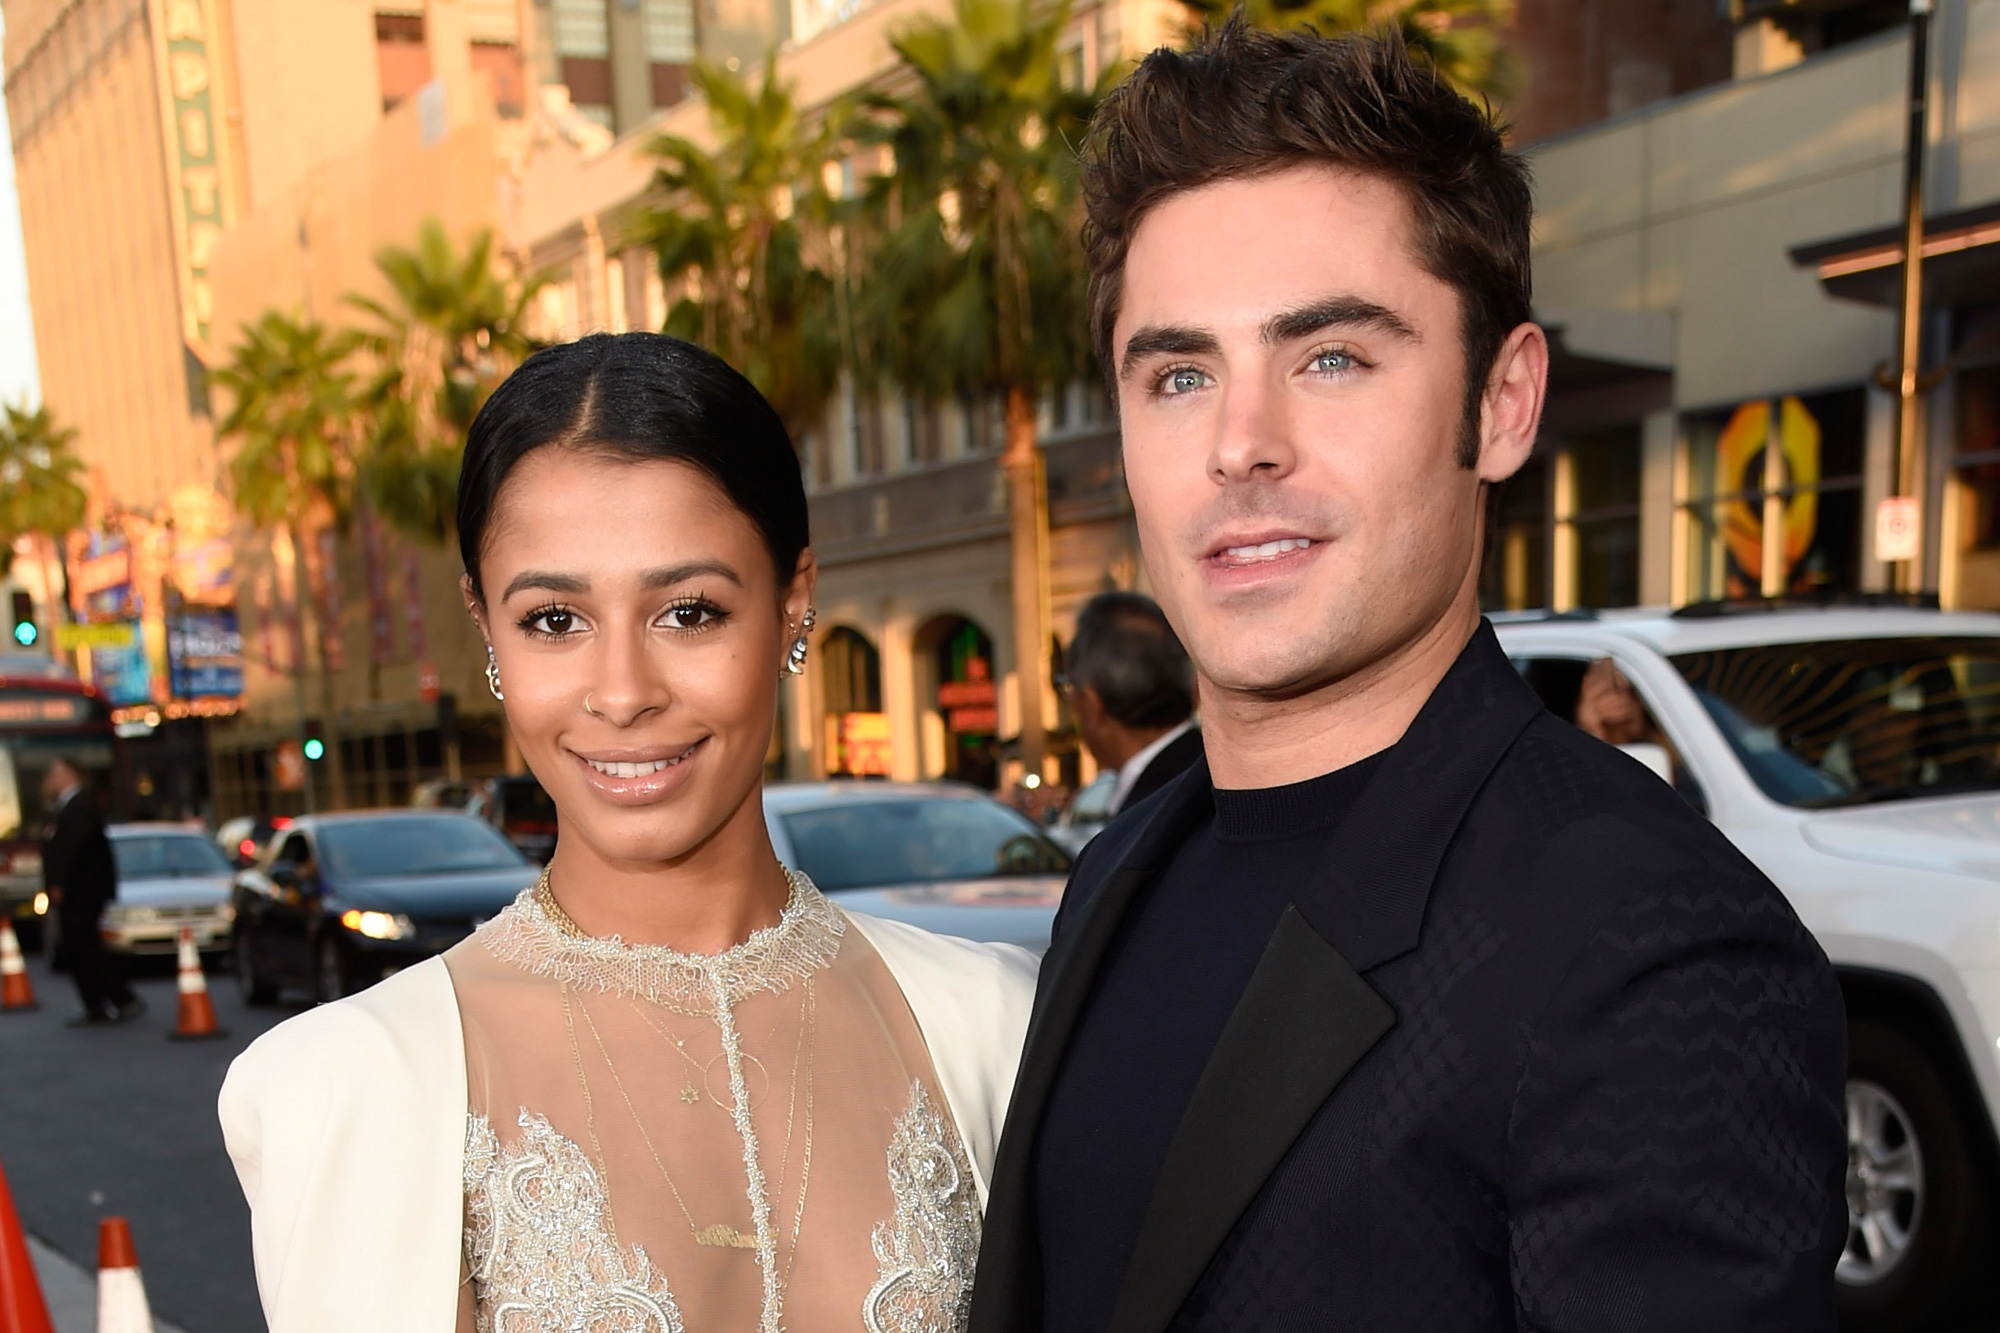 Zac Efron cant keep his lips off girlfriend Sami Miró